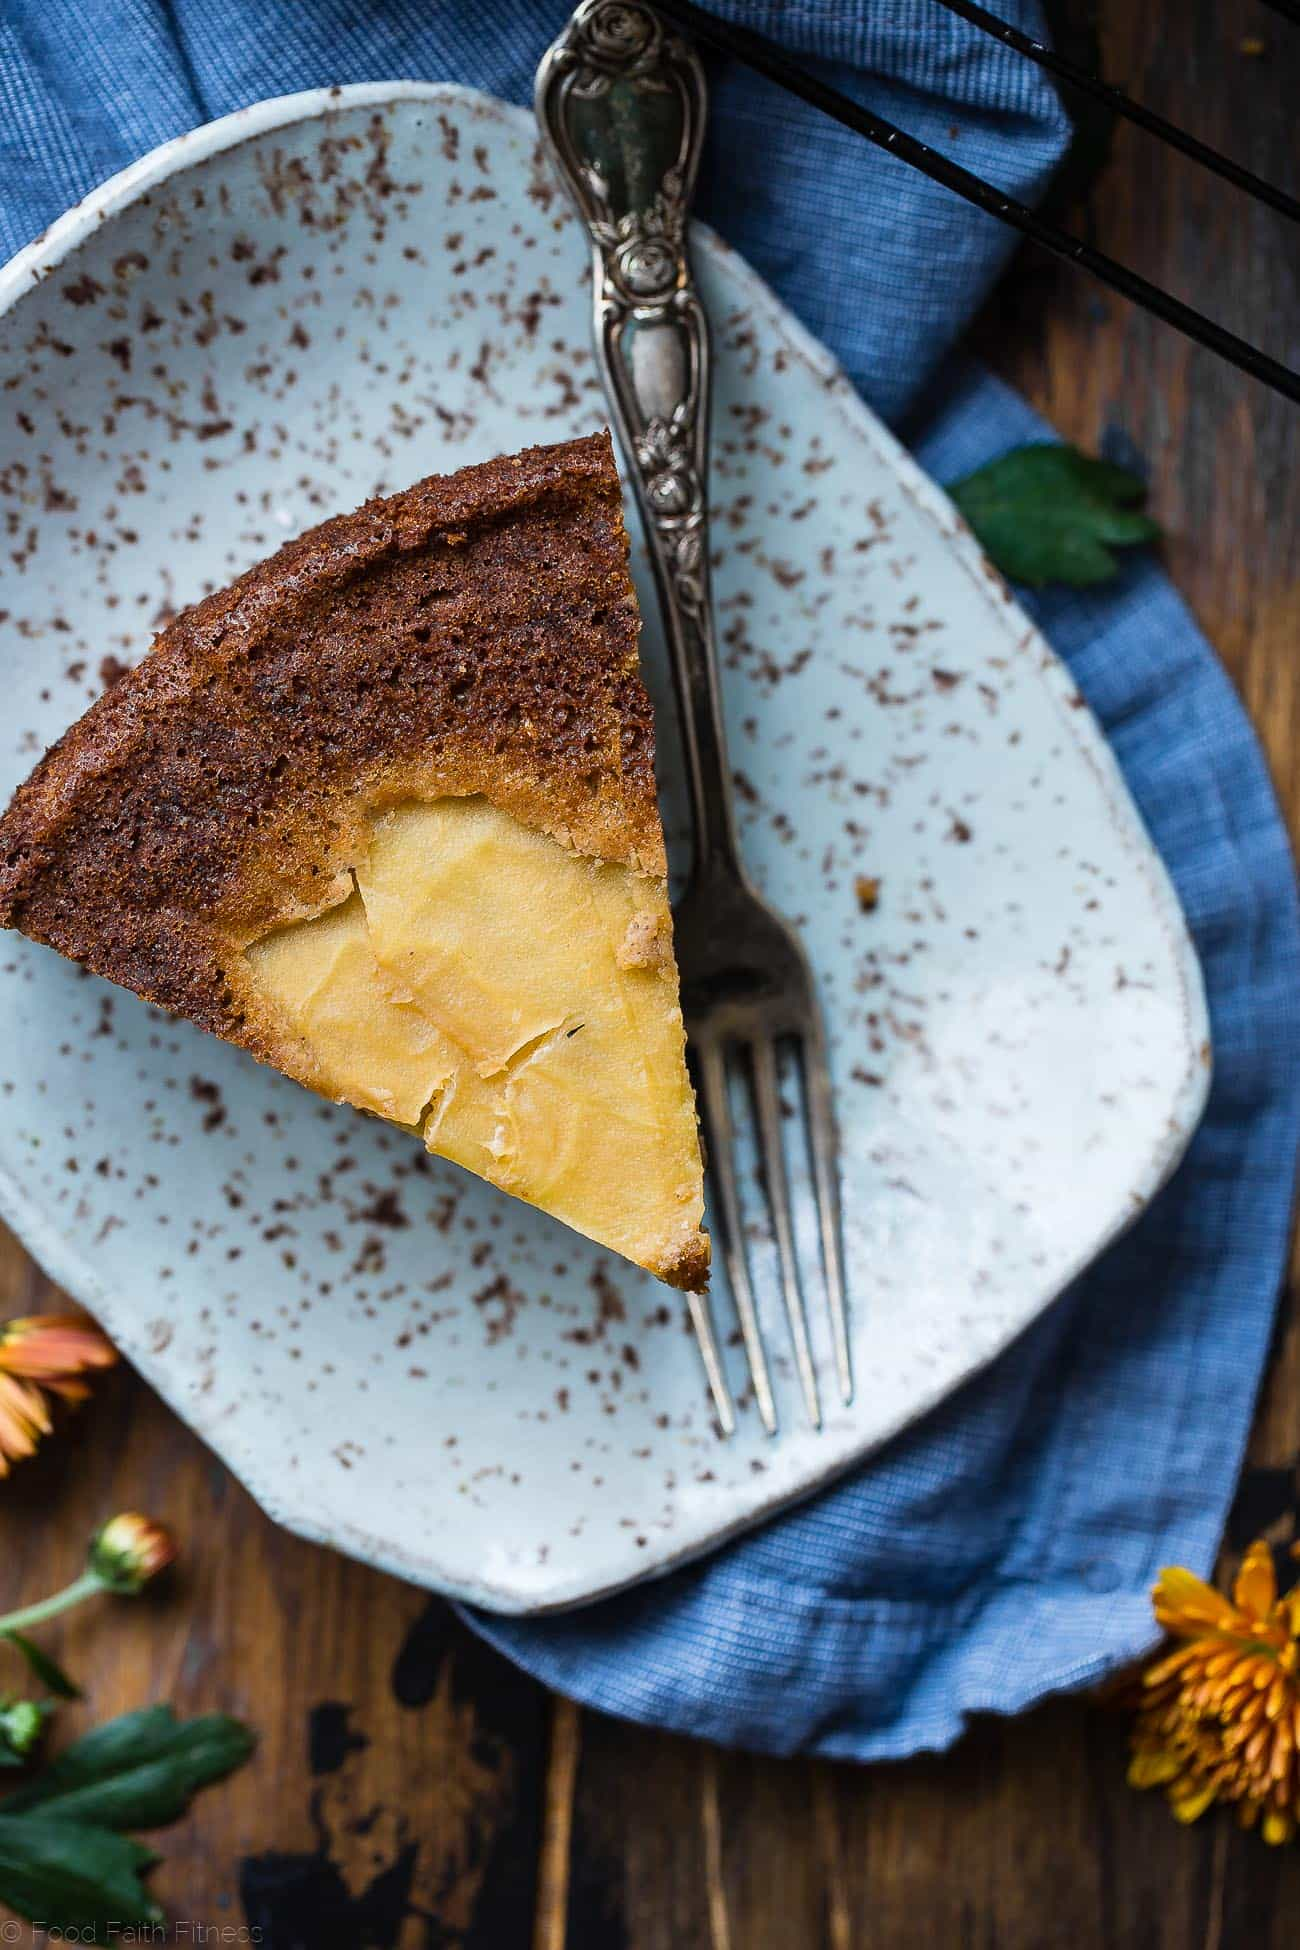 Gluten Free Apple Cinnamon Coffee Cake -This paleo breakfast cake is made with almond flour, apples and naturally sweetened with coconut sugar. Its a healthy, paleo and freezer-friendly breakfast that you will never believe is butter and oil free! | Foodfaithfitness.com | @FoodFaithFit